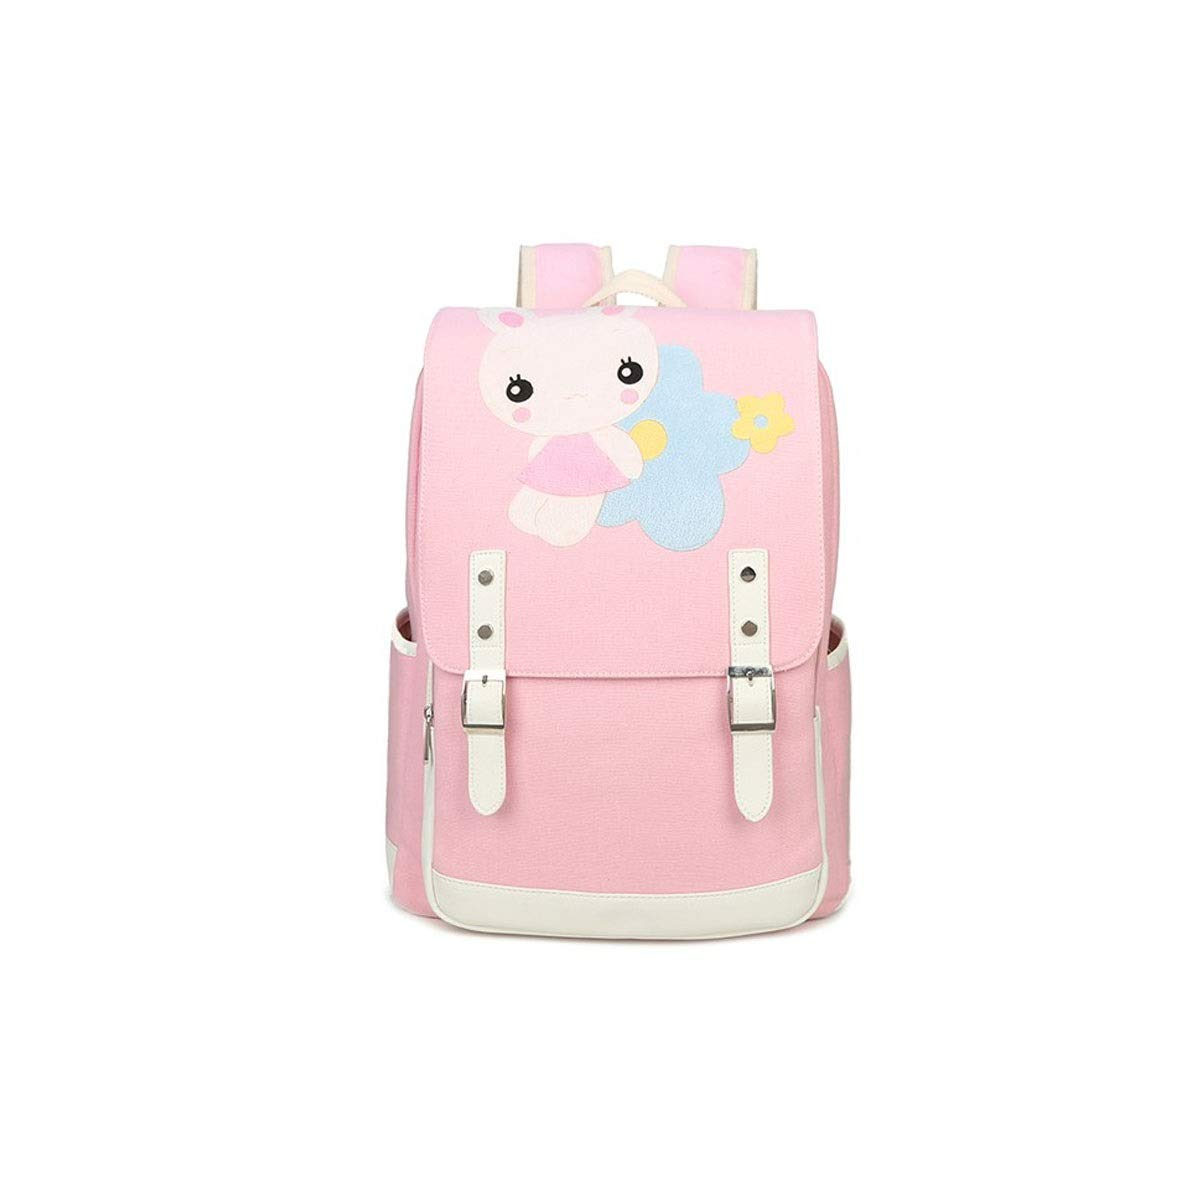 TONGBOSHI Simple Fashion Backpack, School Bag Primary School Student, Girl Leisure Travel Travel Backpack, Lightweight Backpack (Color : Pink, Size : S)